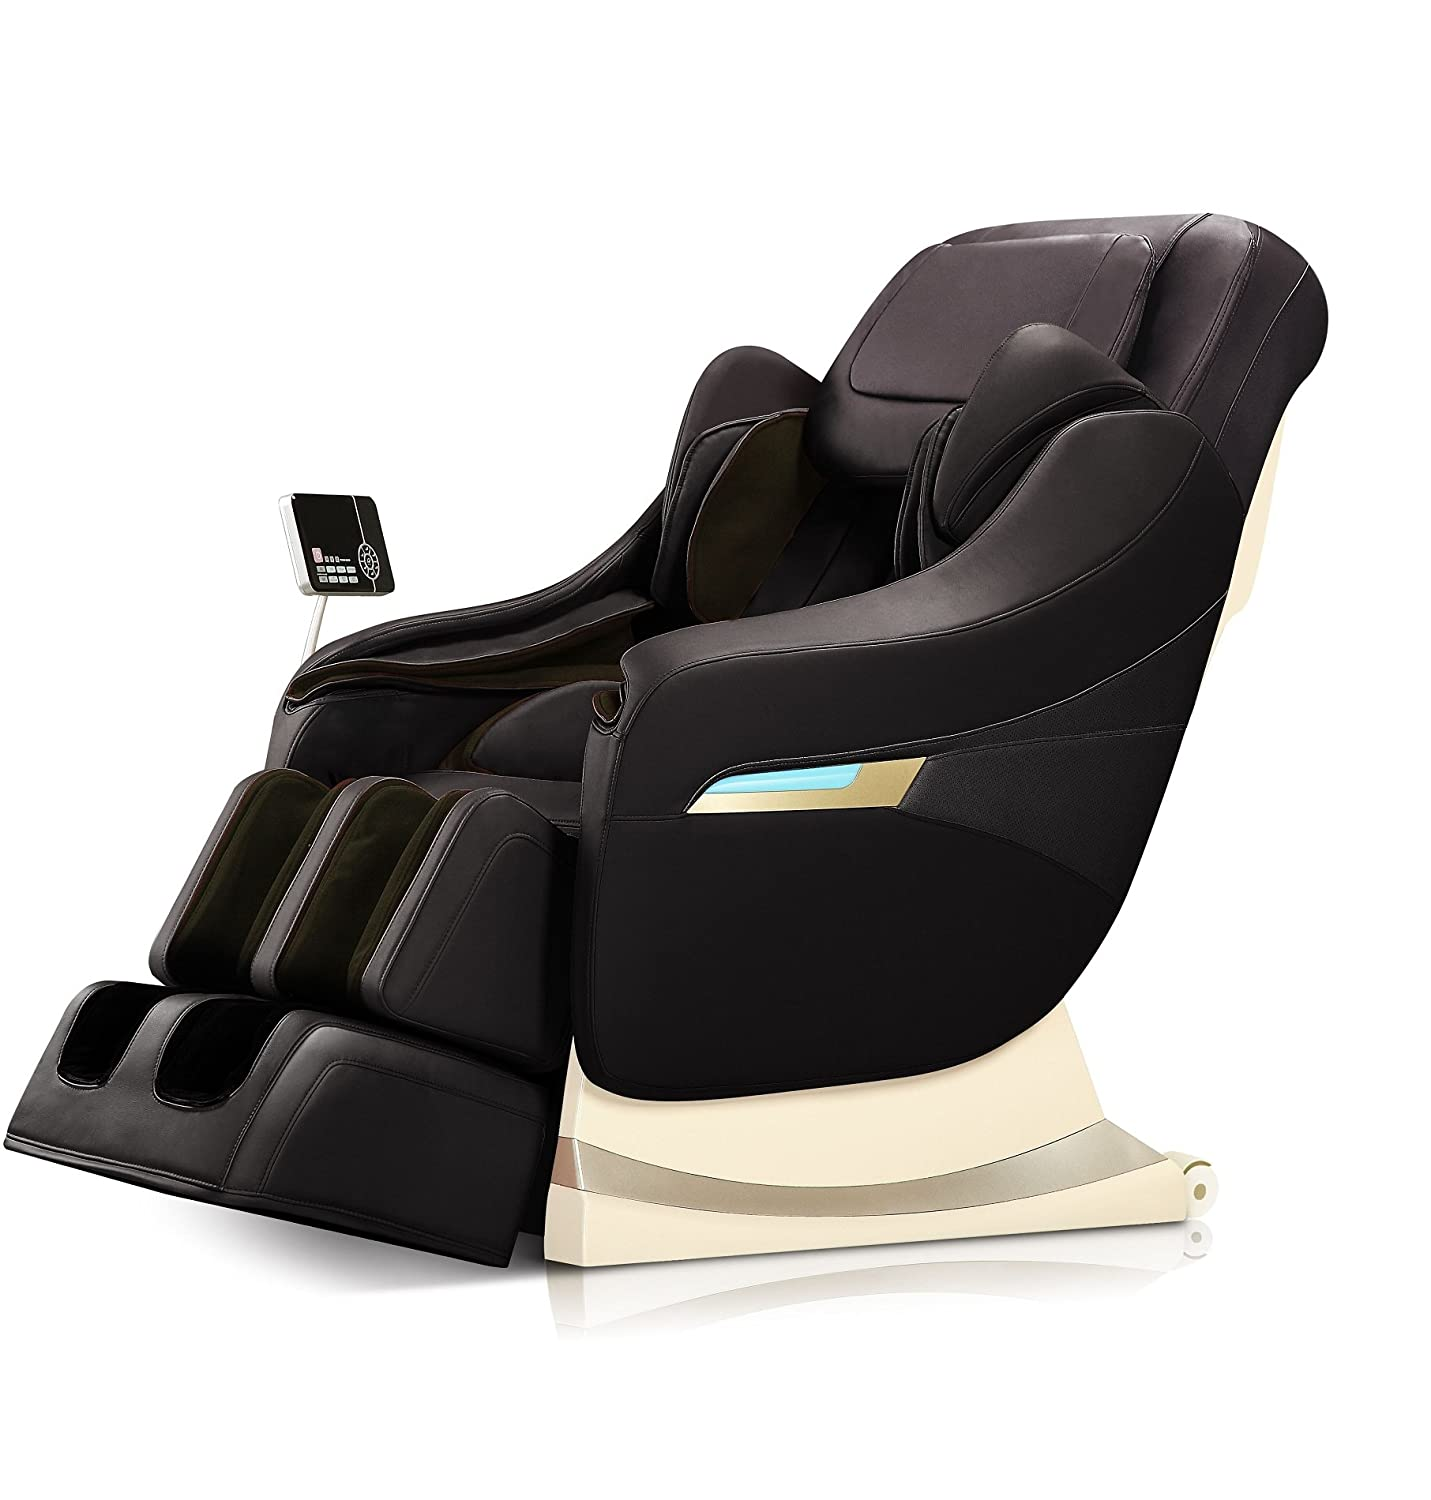 Robotouch Elite Full Featured Smart Luxury Massage Chair RED